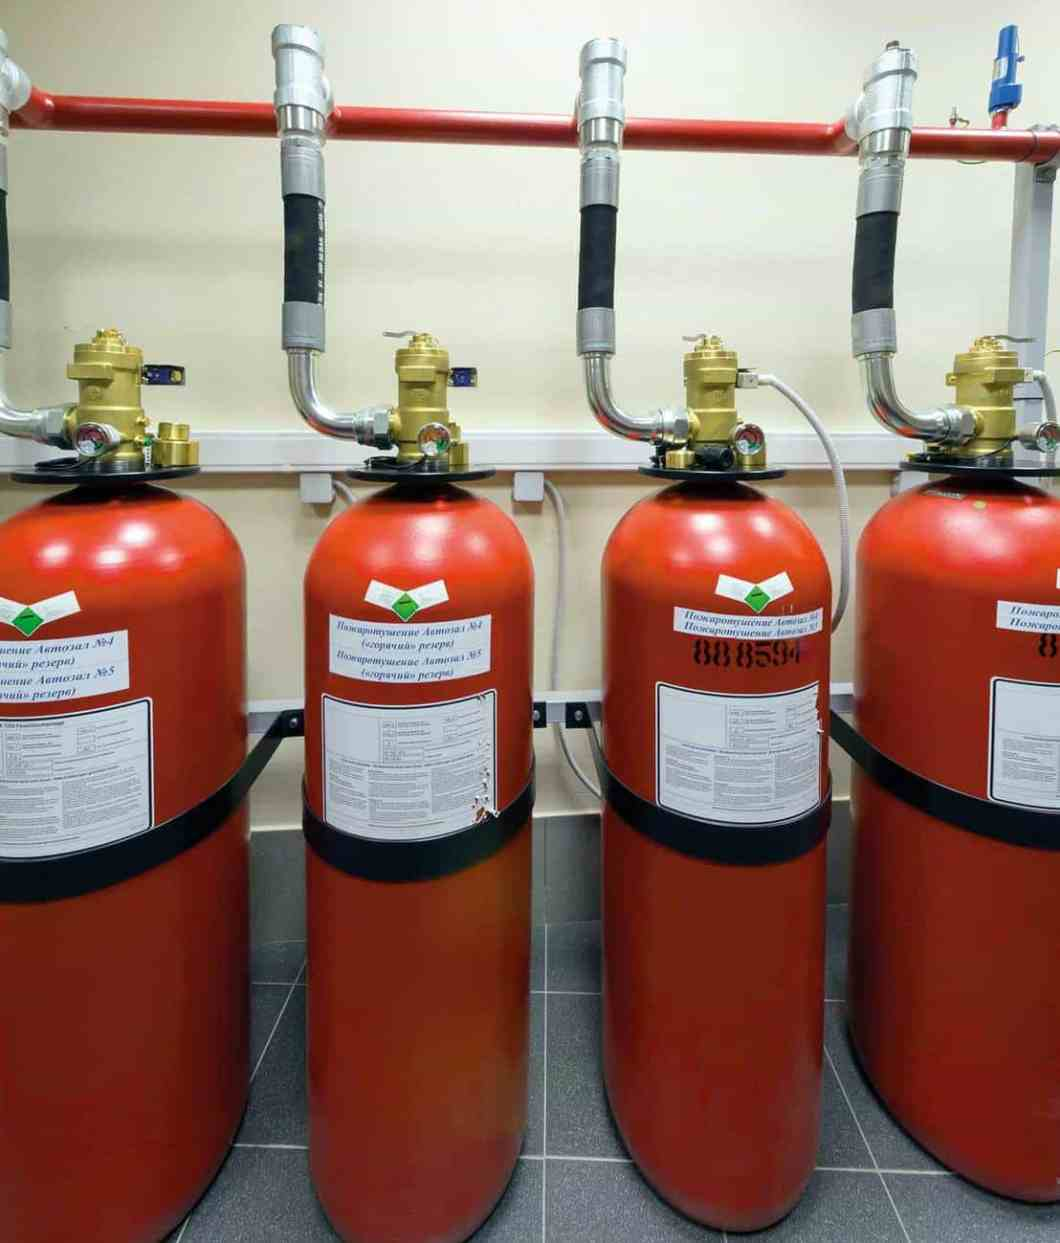 Australian Standard AS 1851 sets out the requirements for the routine servicing of fire protection systems and equipment.